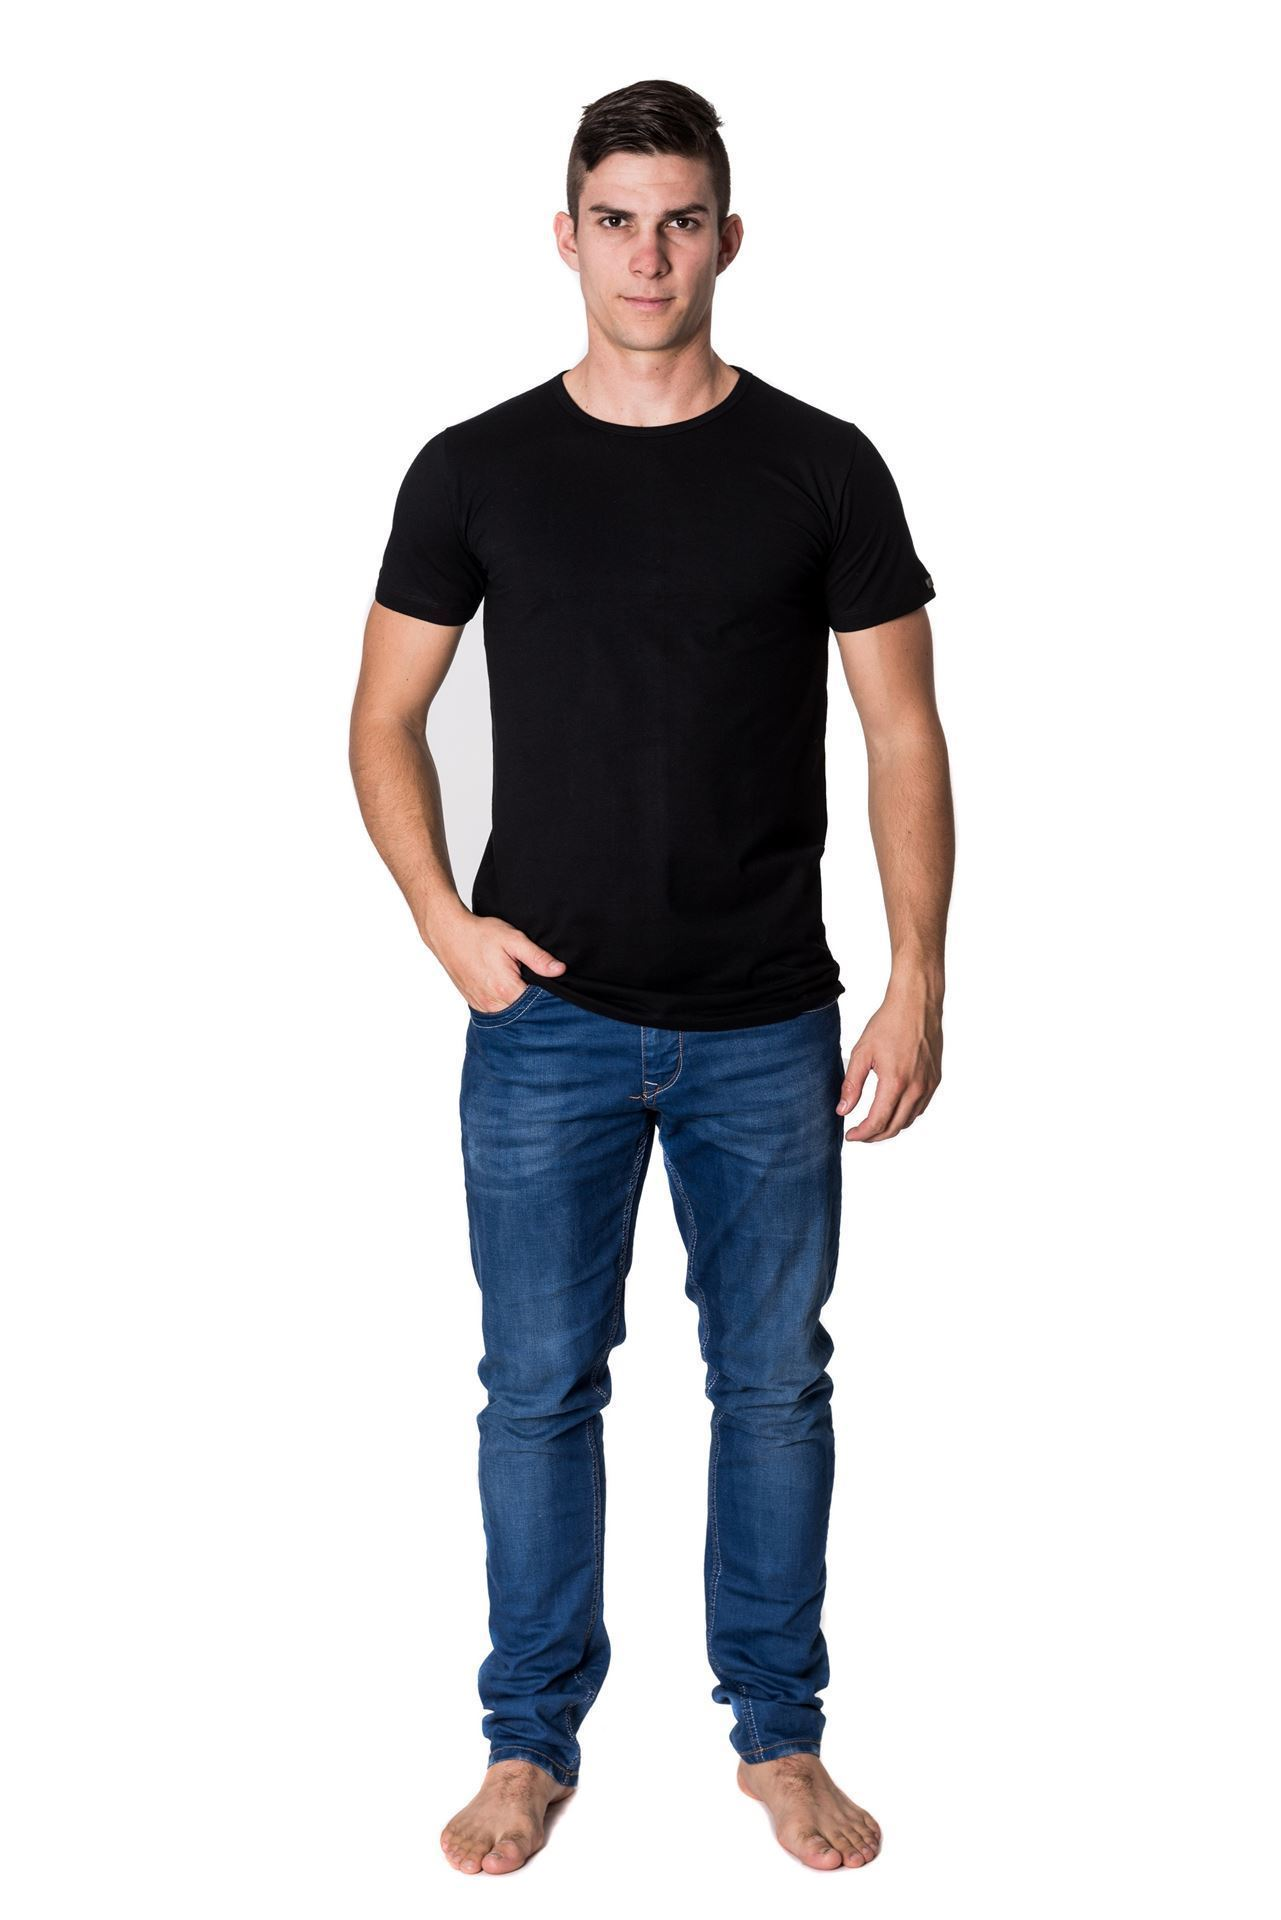 Picture of Men's short sleeves undershirt